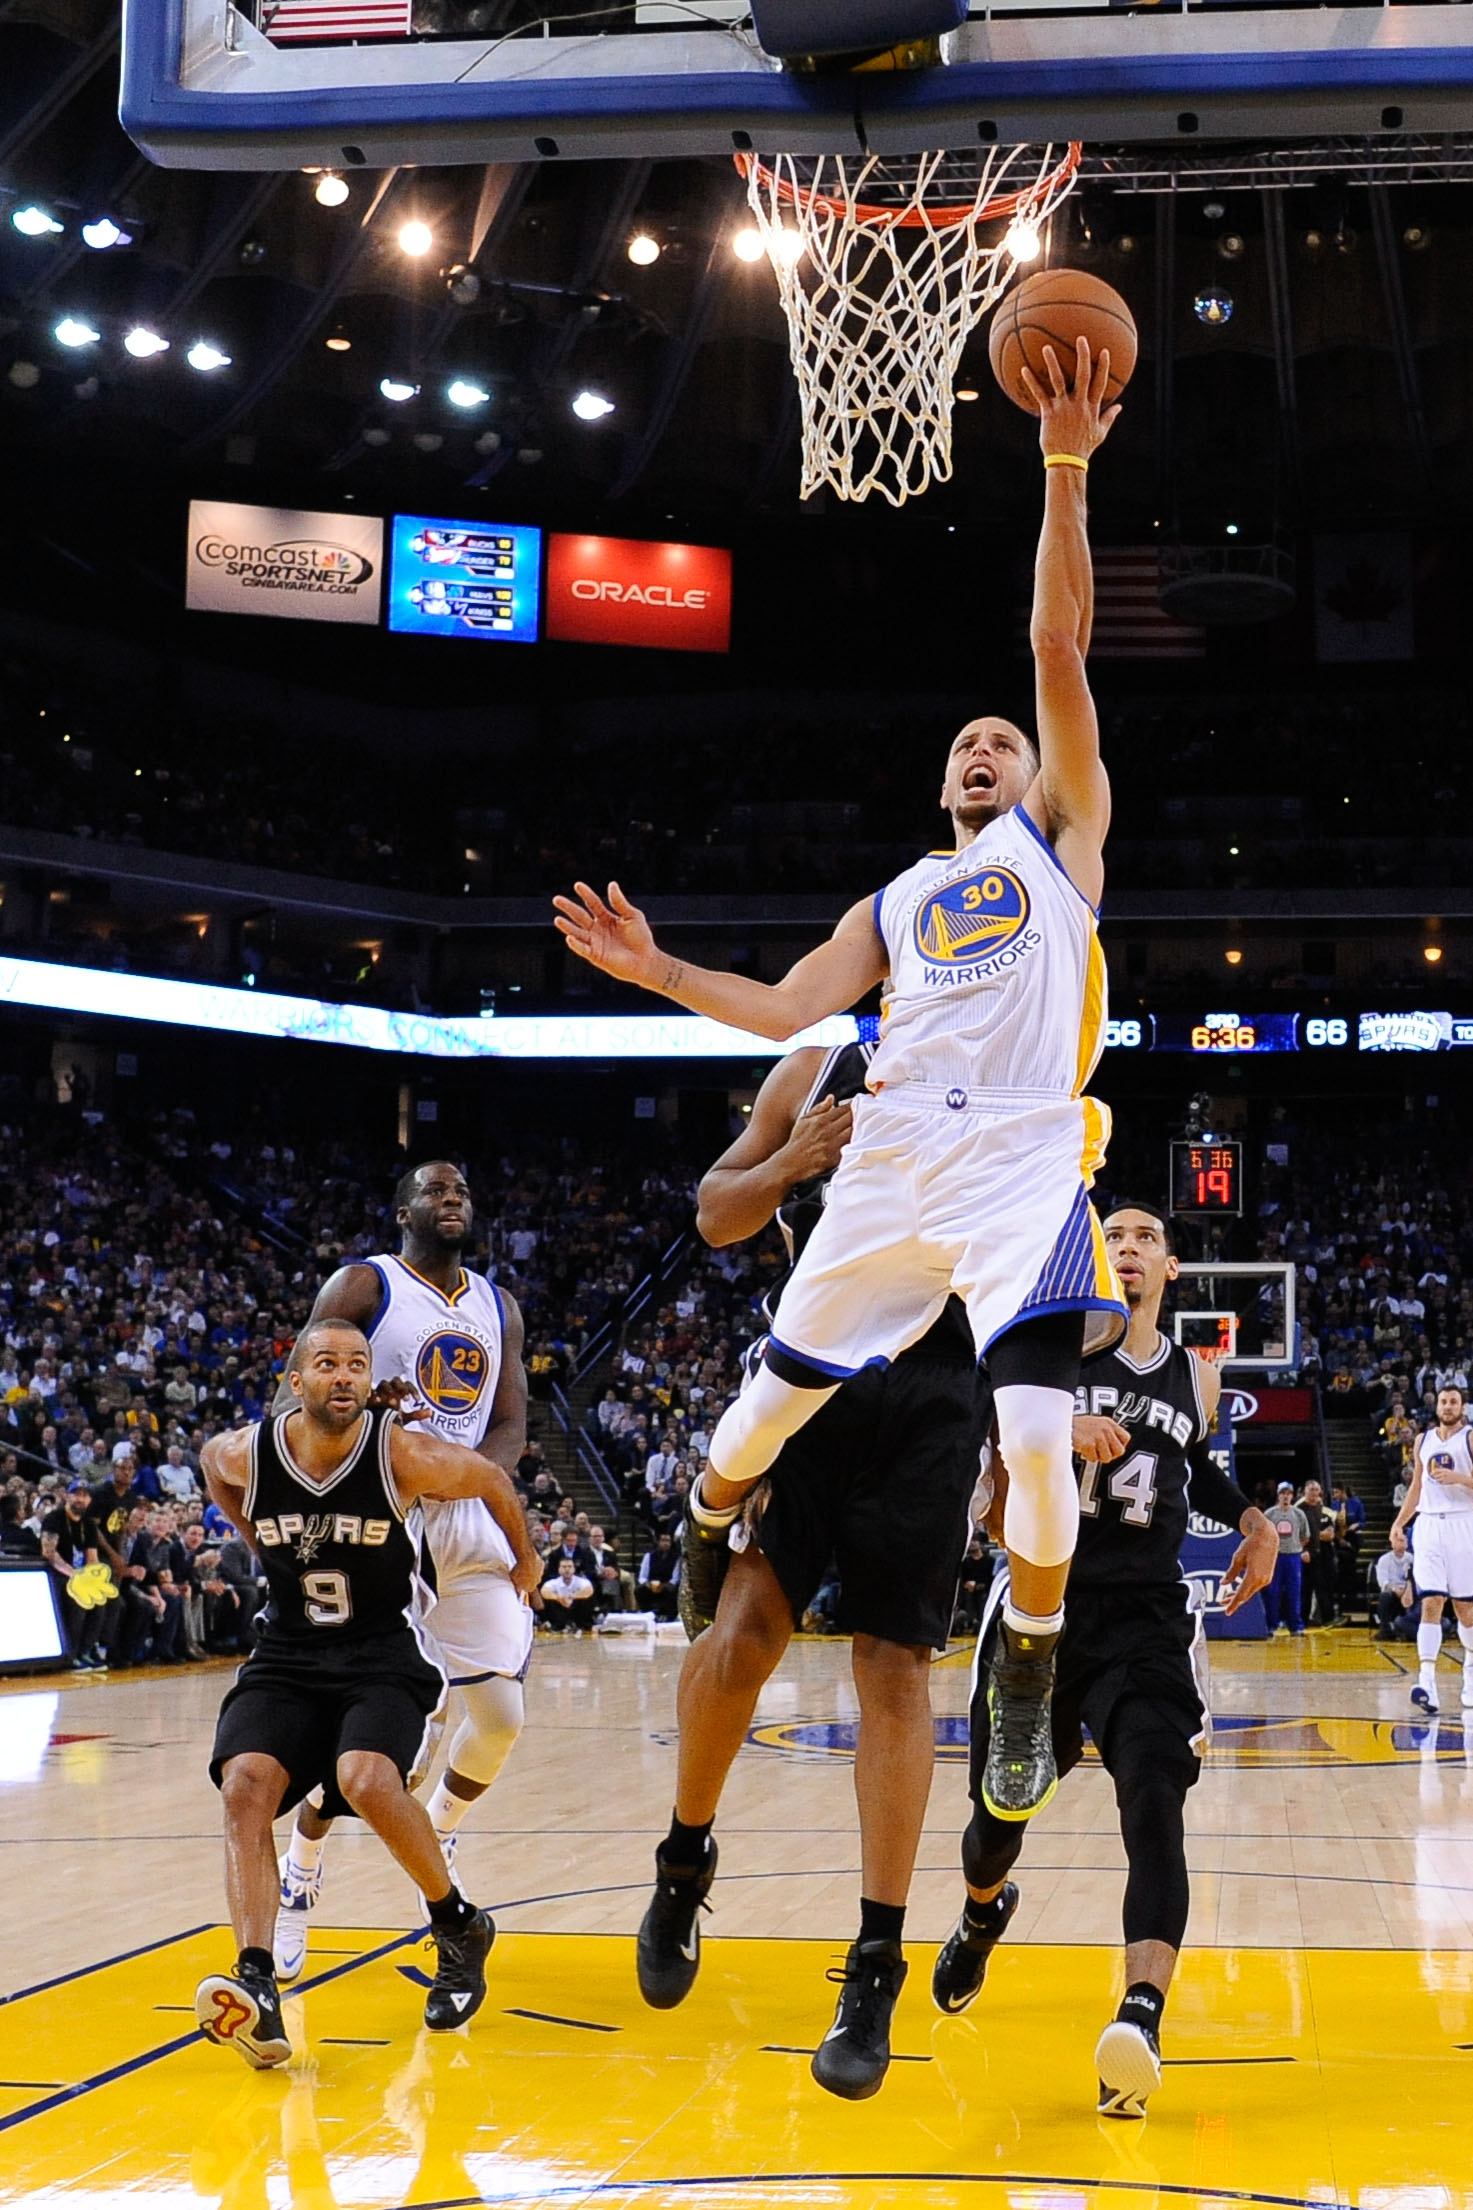 NBA power rankings 2014: Warriors continue to lead the pack